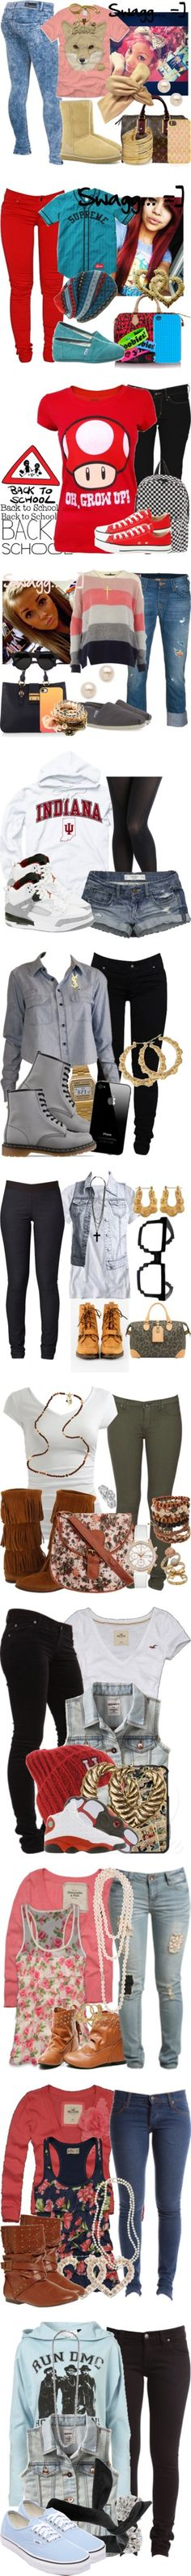 """Stuff I would wear to school (Part 2)"" by mizzstarburst on Polyvore"